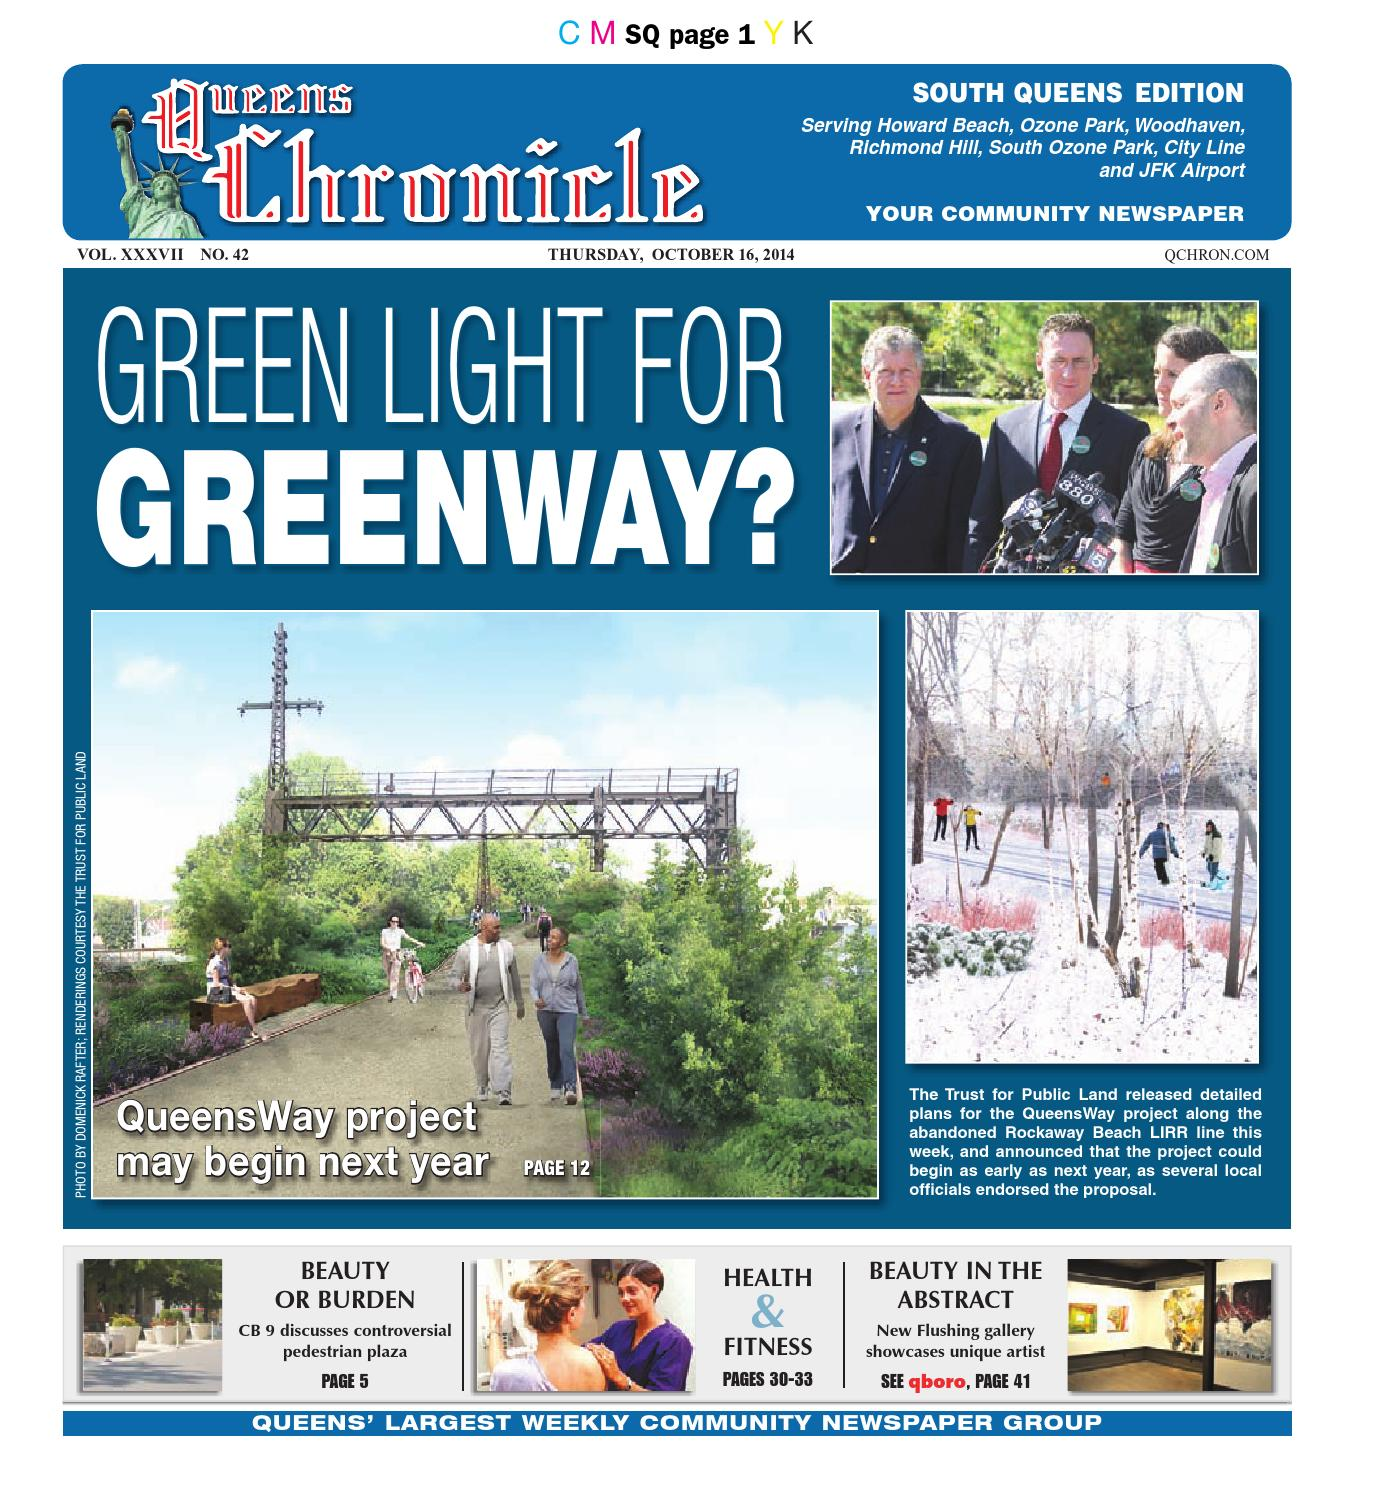 queens chronicle south edition 10 16 14 by queens chronicle issuu